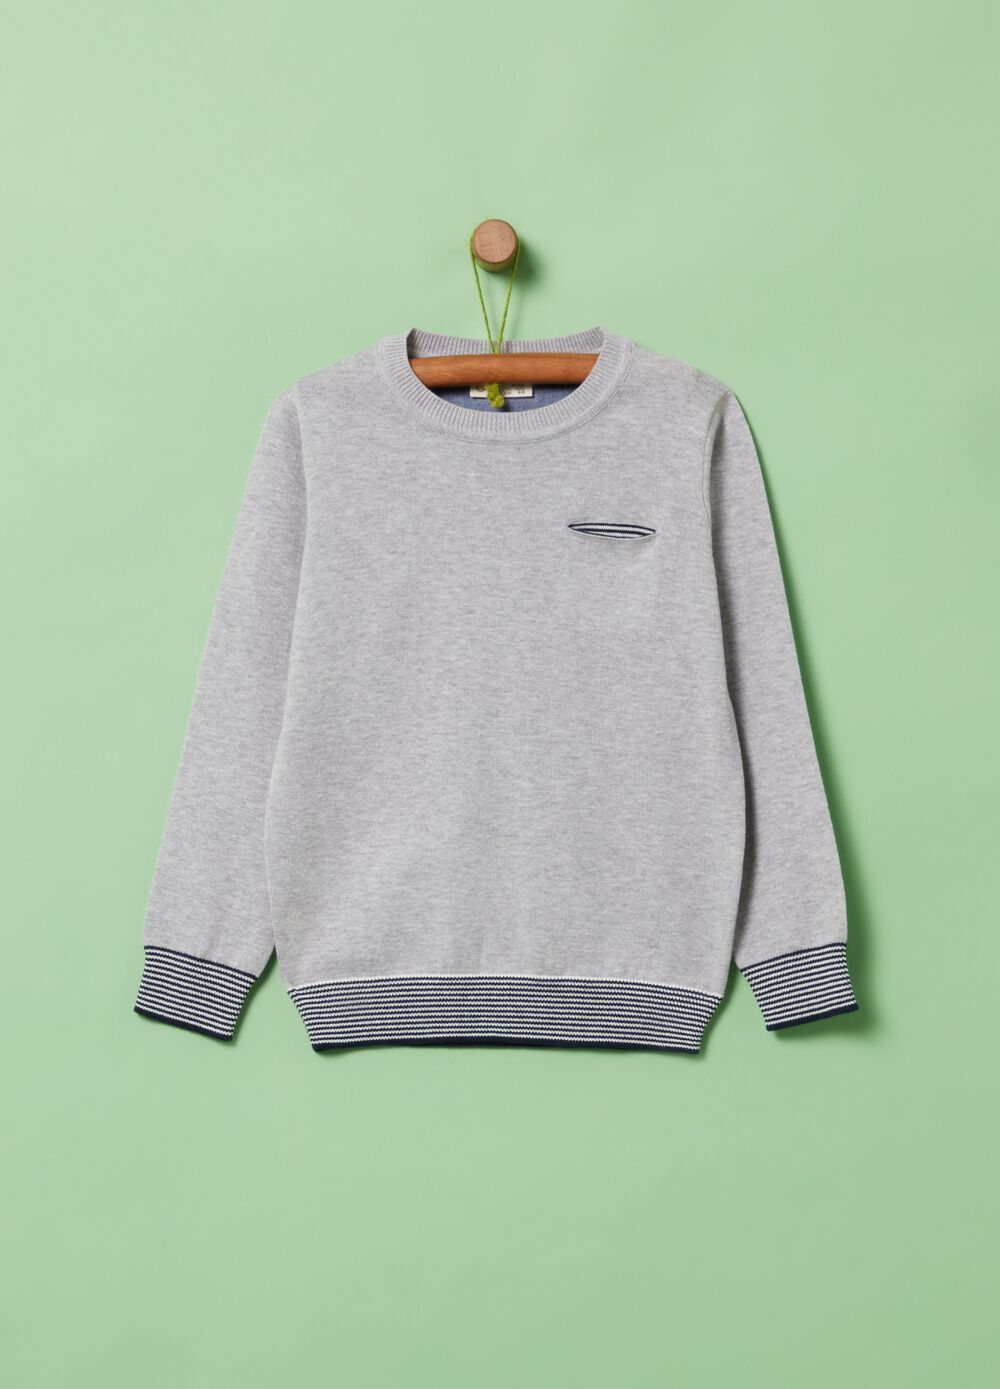 100% organic cotton pullover with pocket